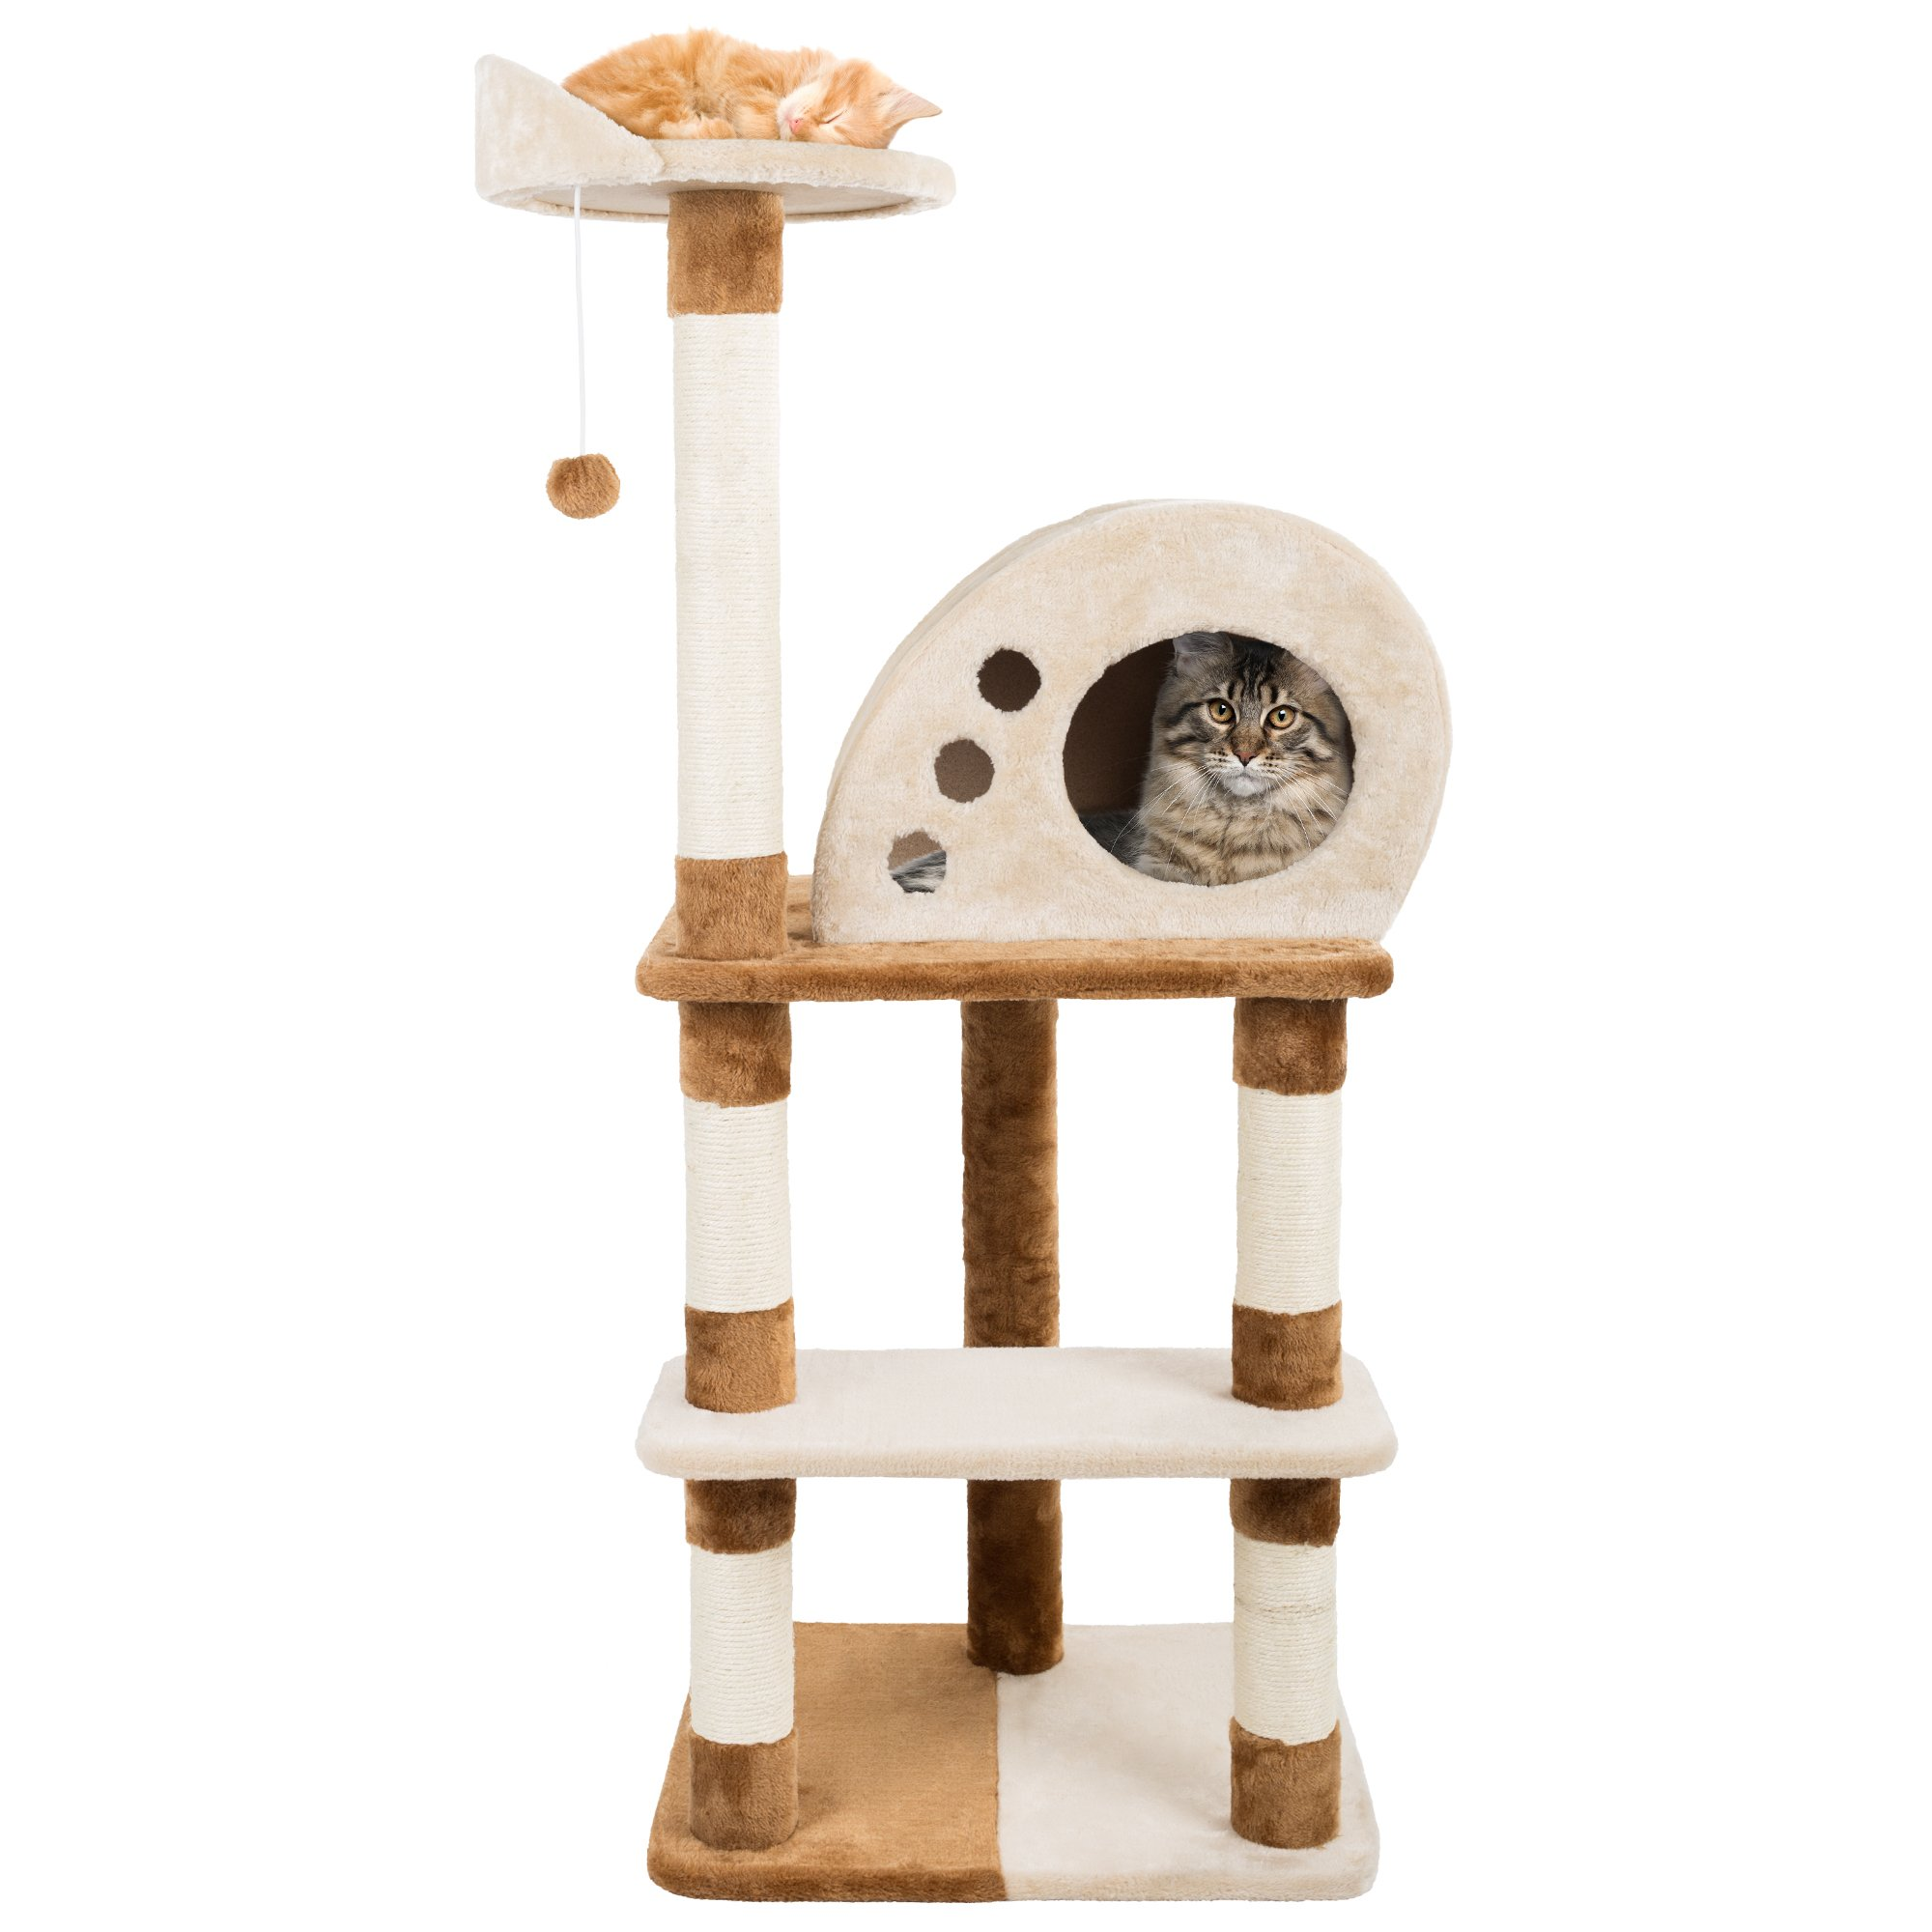 "PETMAKER 4 Tier Cat Tree- Plush Multi-Level Cat Tower with Sisal Scratching Posts, Perch, Cat Condo and Hanging Toy for Cats and Kittens (47.5"")"